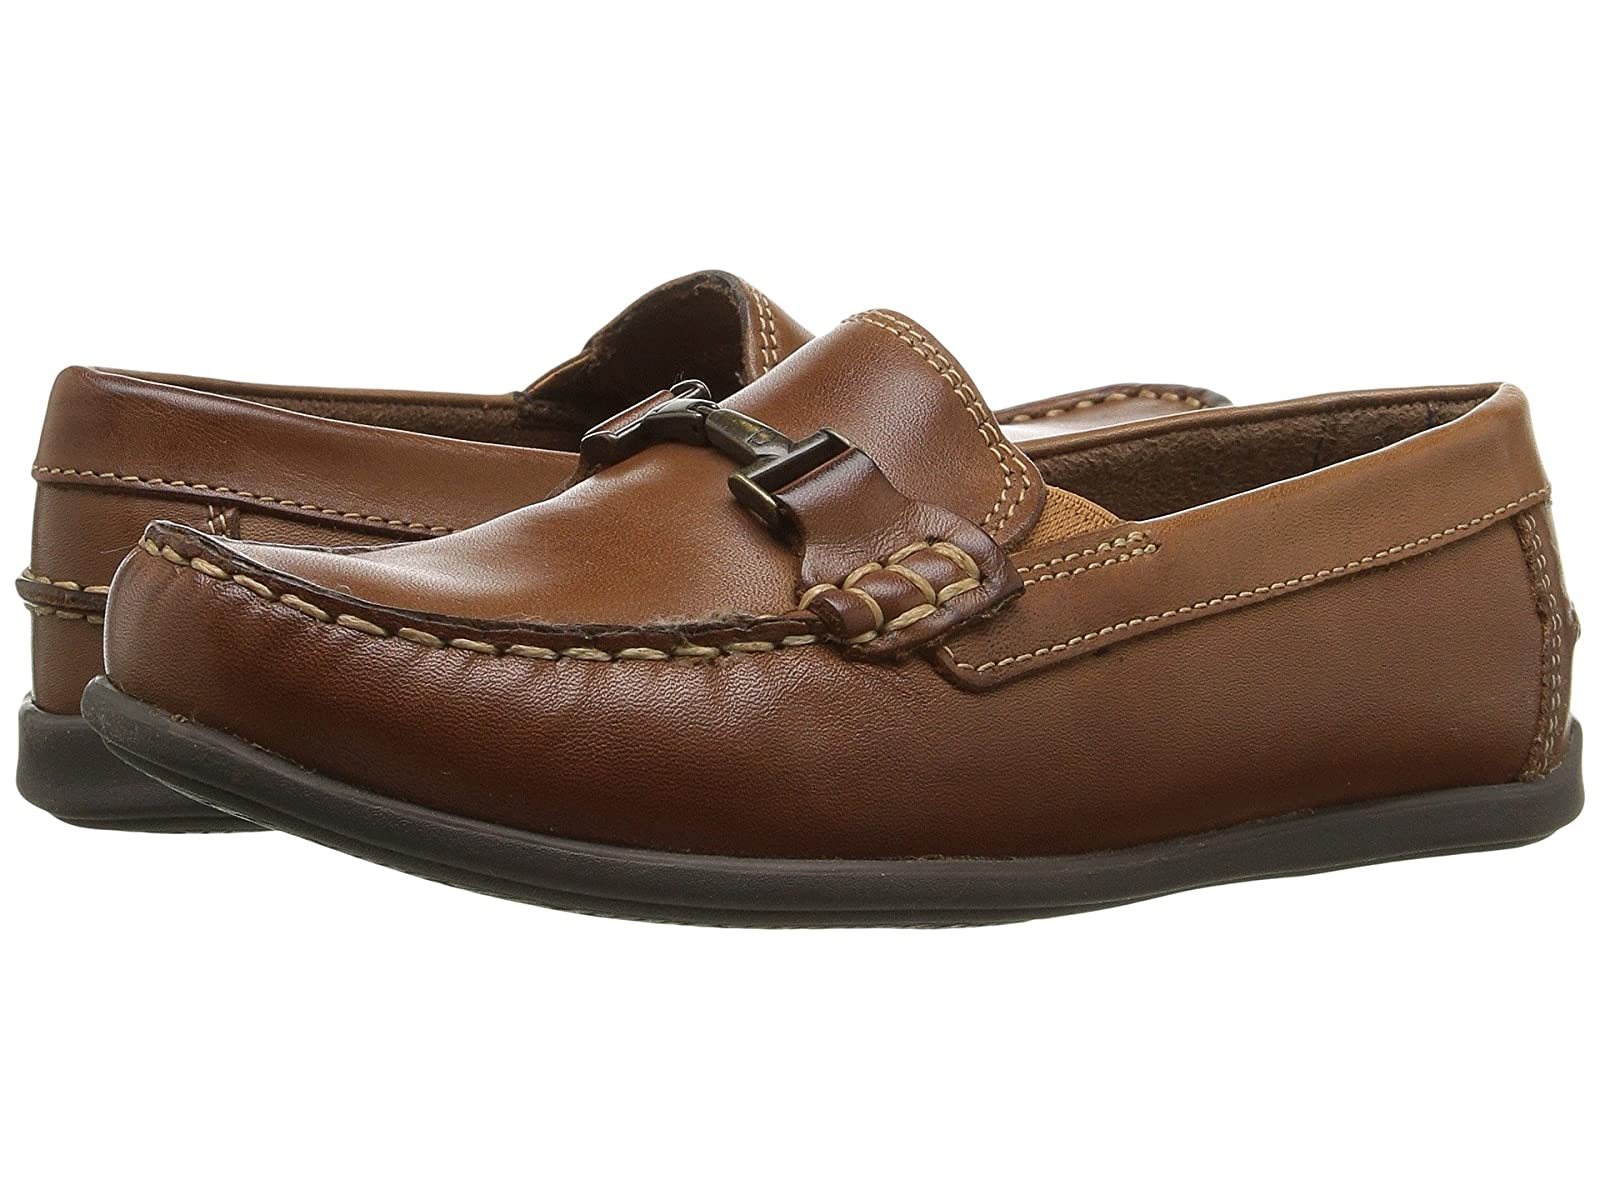 Florsheim Kids Jasper Bit, Jr. Loafer (Toddler/Little Kid/Big Kid)Atmospheric grades have affordable shoes